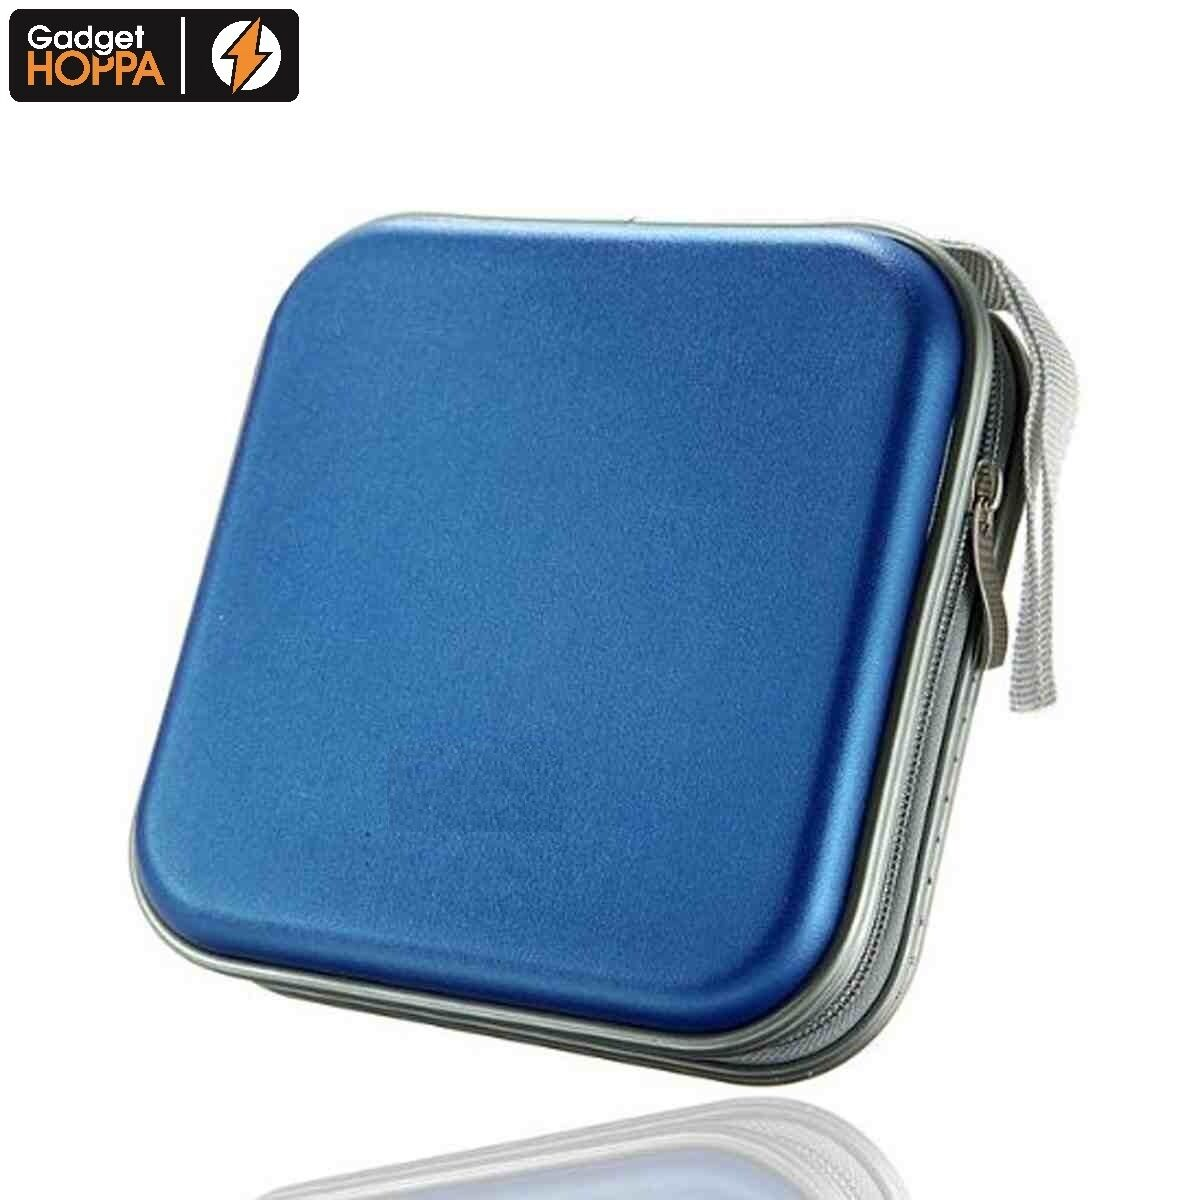 40 Cd Dvd Carry Case Disc Storage Holder Cd Sleeve Wallet